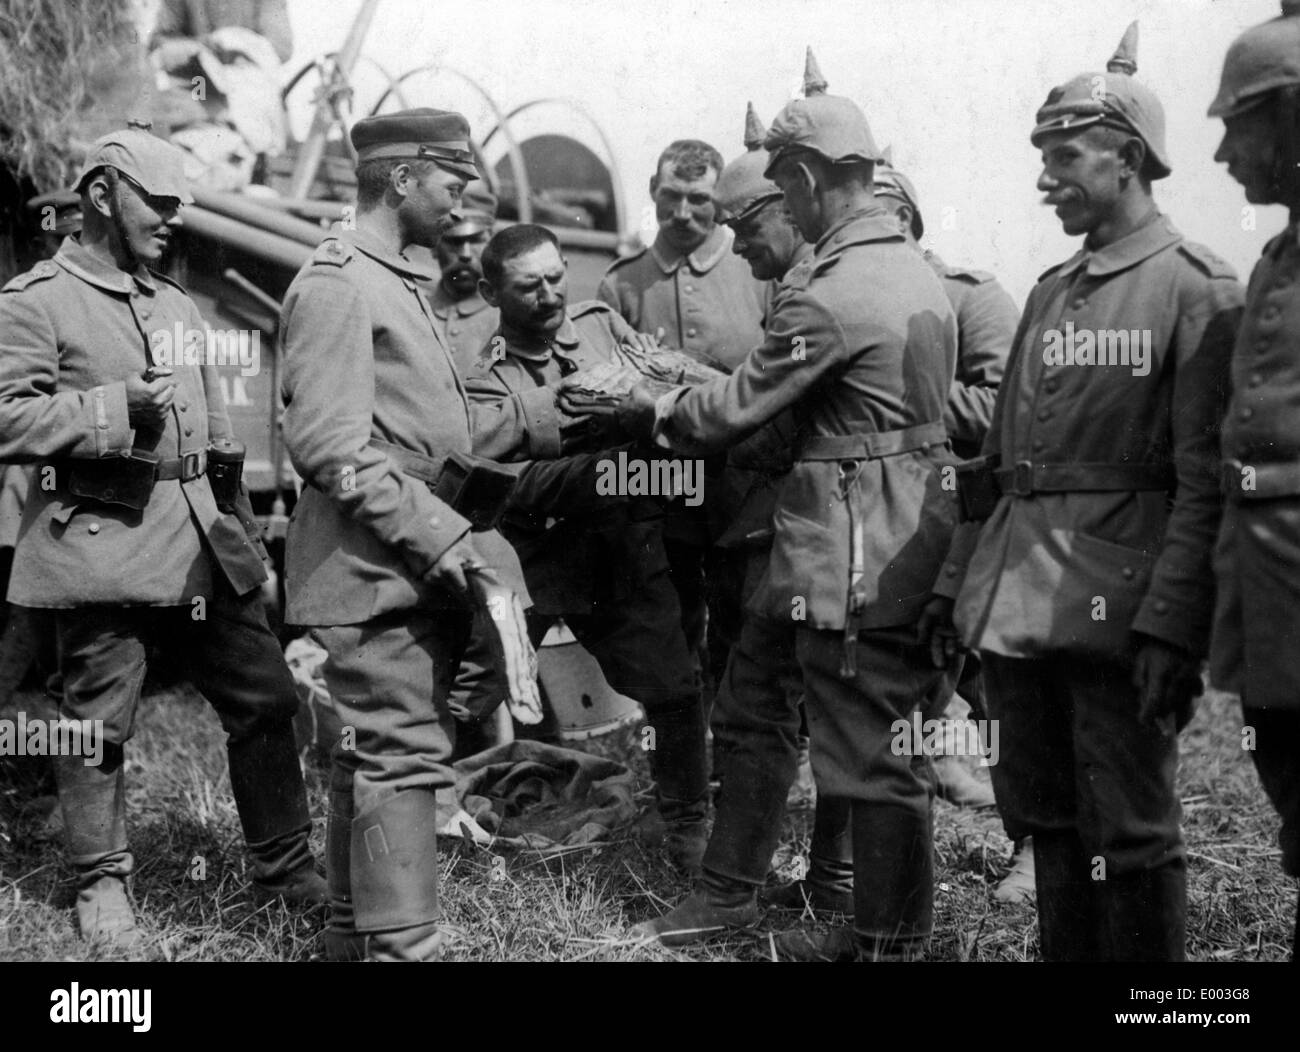 German Soldiers 1914 Immagini   German Soldiers 1914 Fotos Stock - Alamy cabfc35a9bed